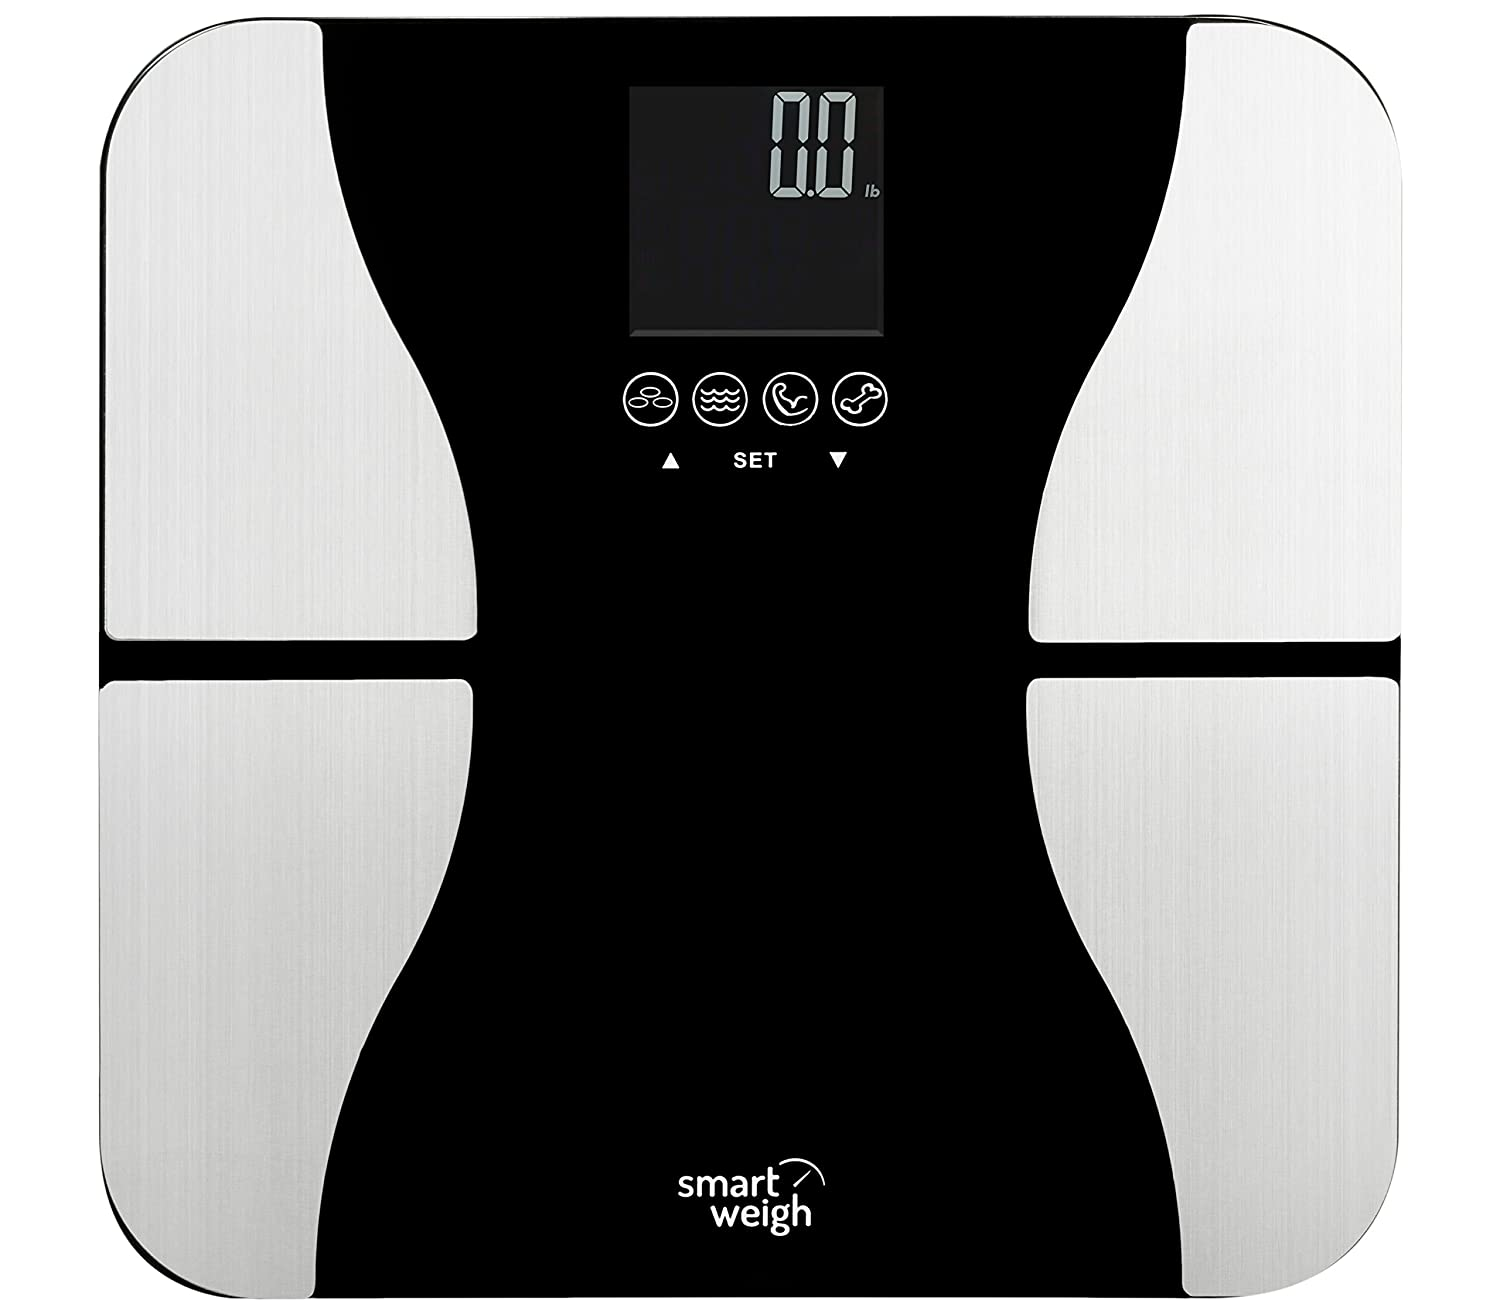 Digital bathroom scales target - Smart Weigh Body Fat Digital Precision Scale With Tempered Glass Platform Amazon Co Uk Health Personal Care